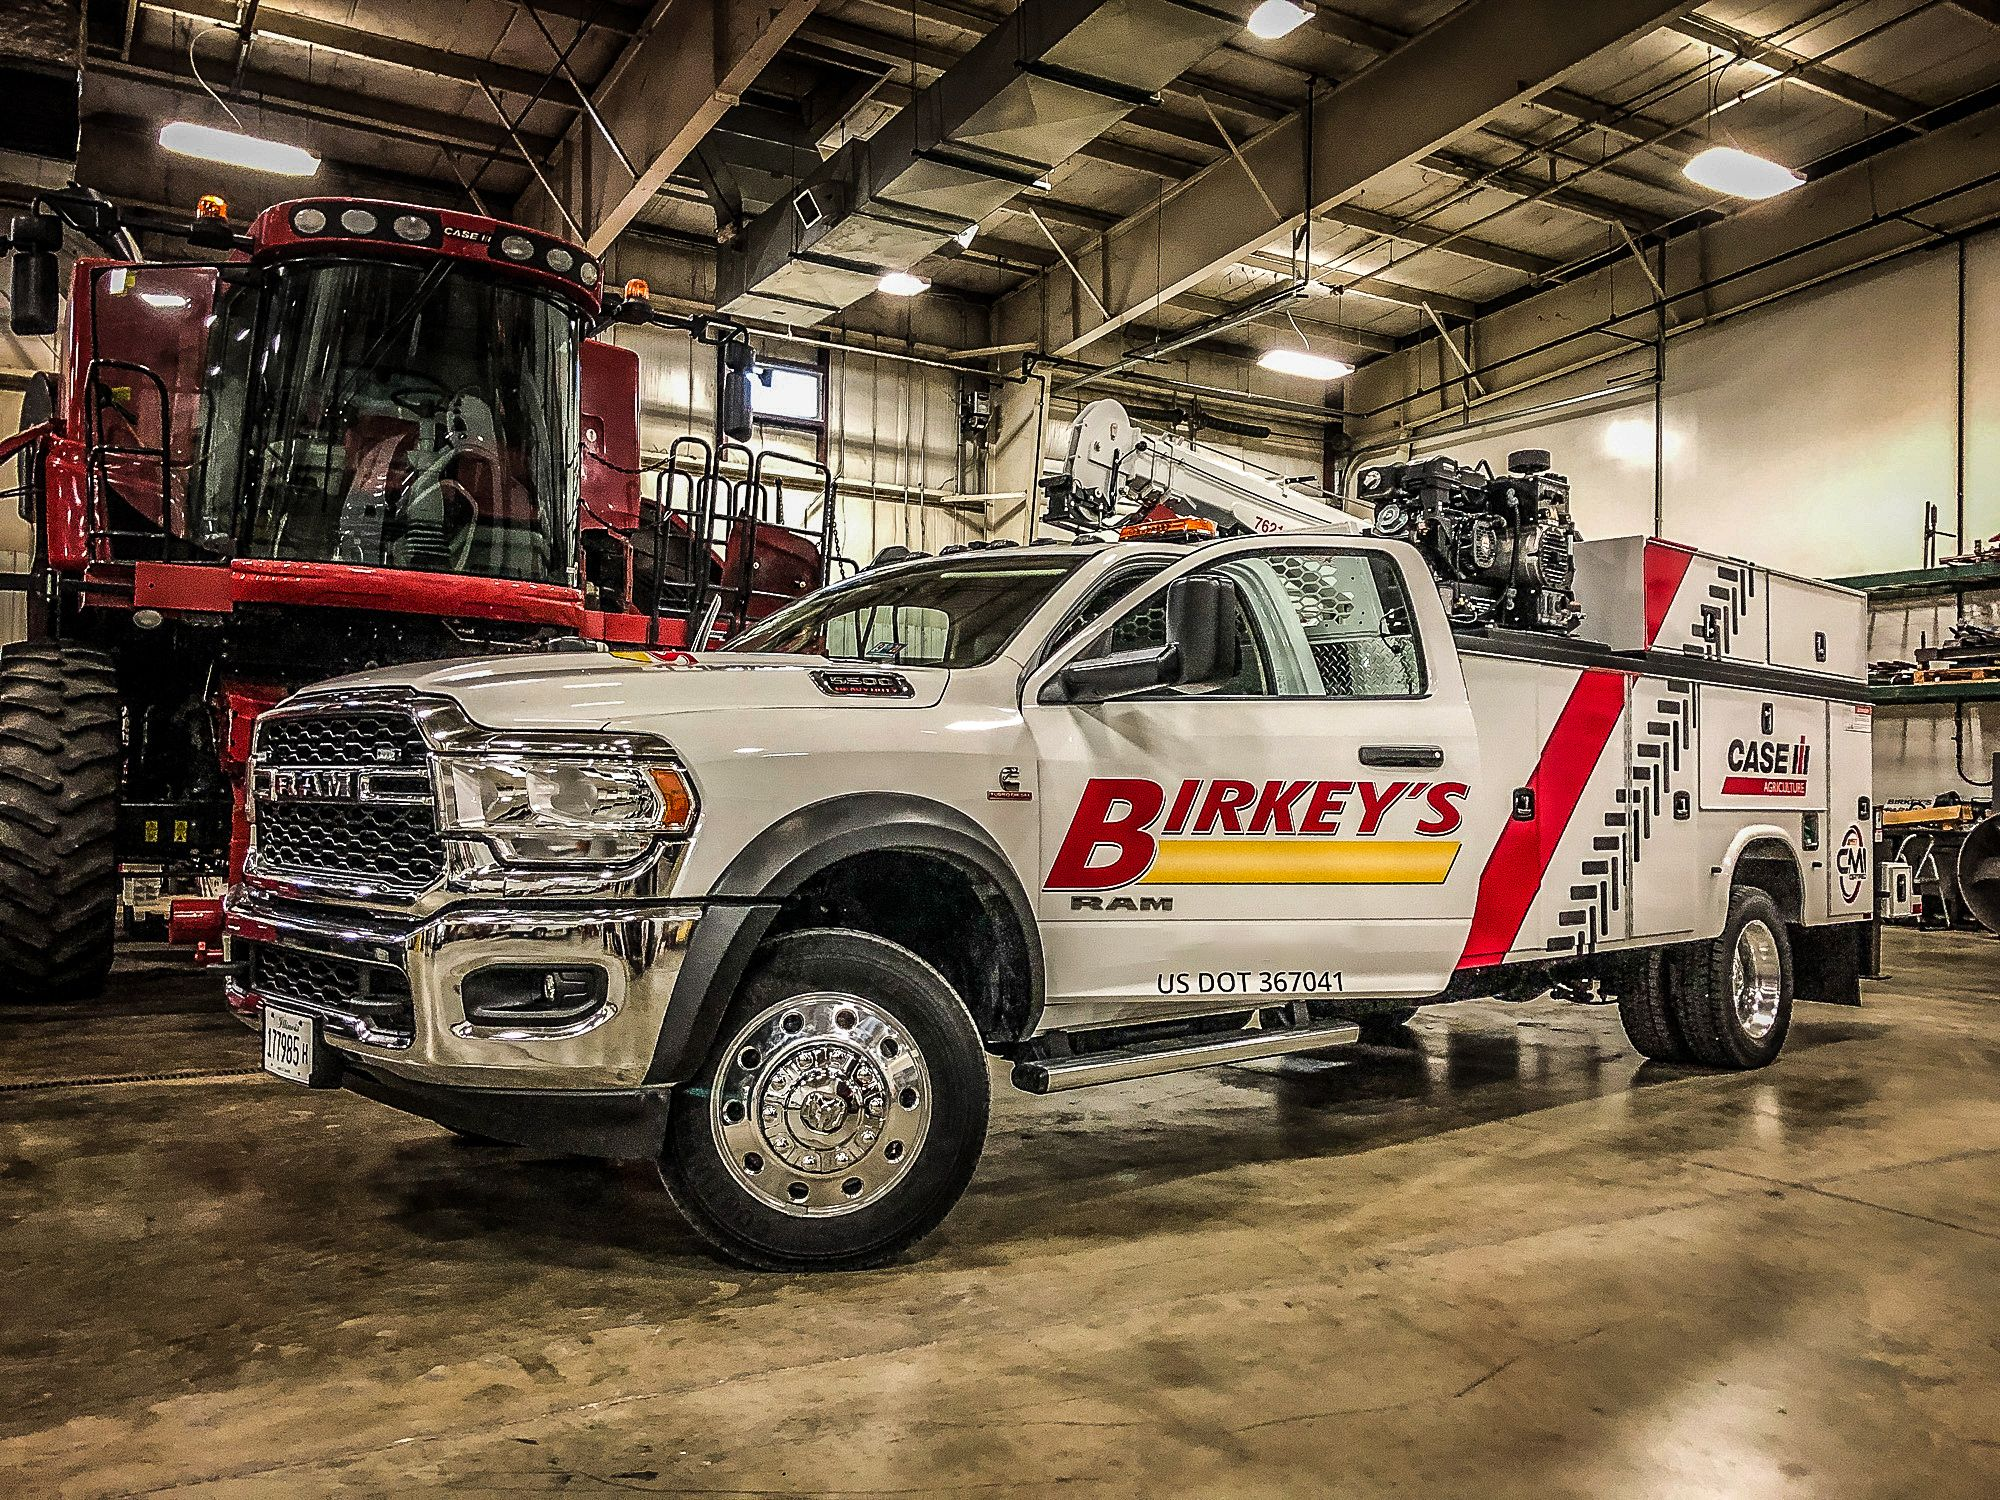 Birkey's is looking to add to our service teams! We're